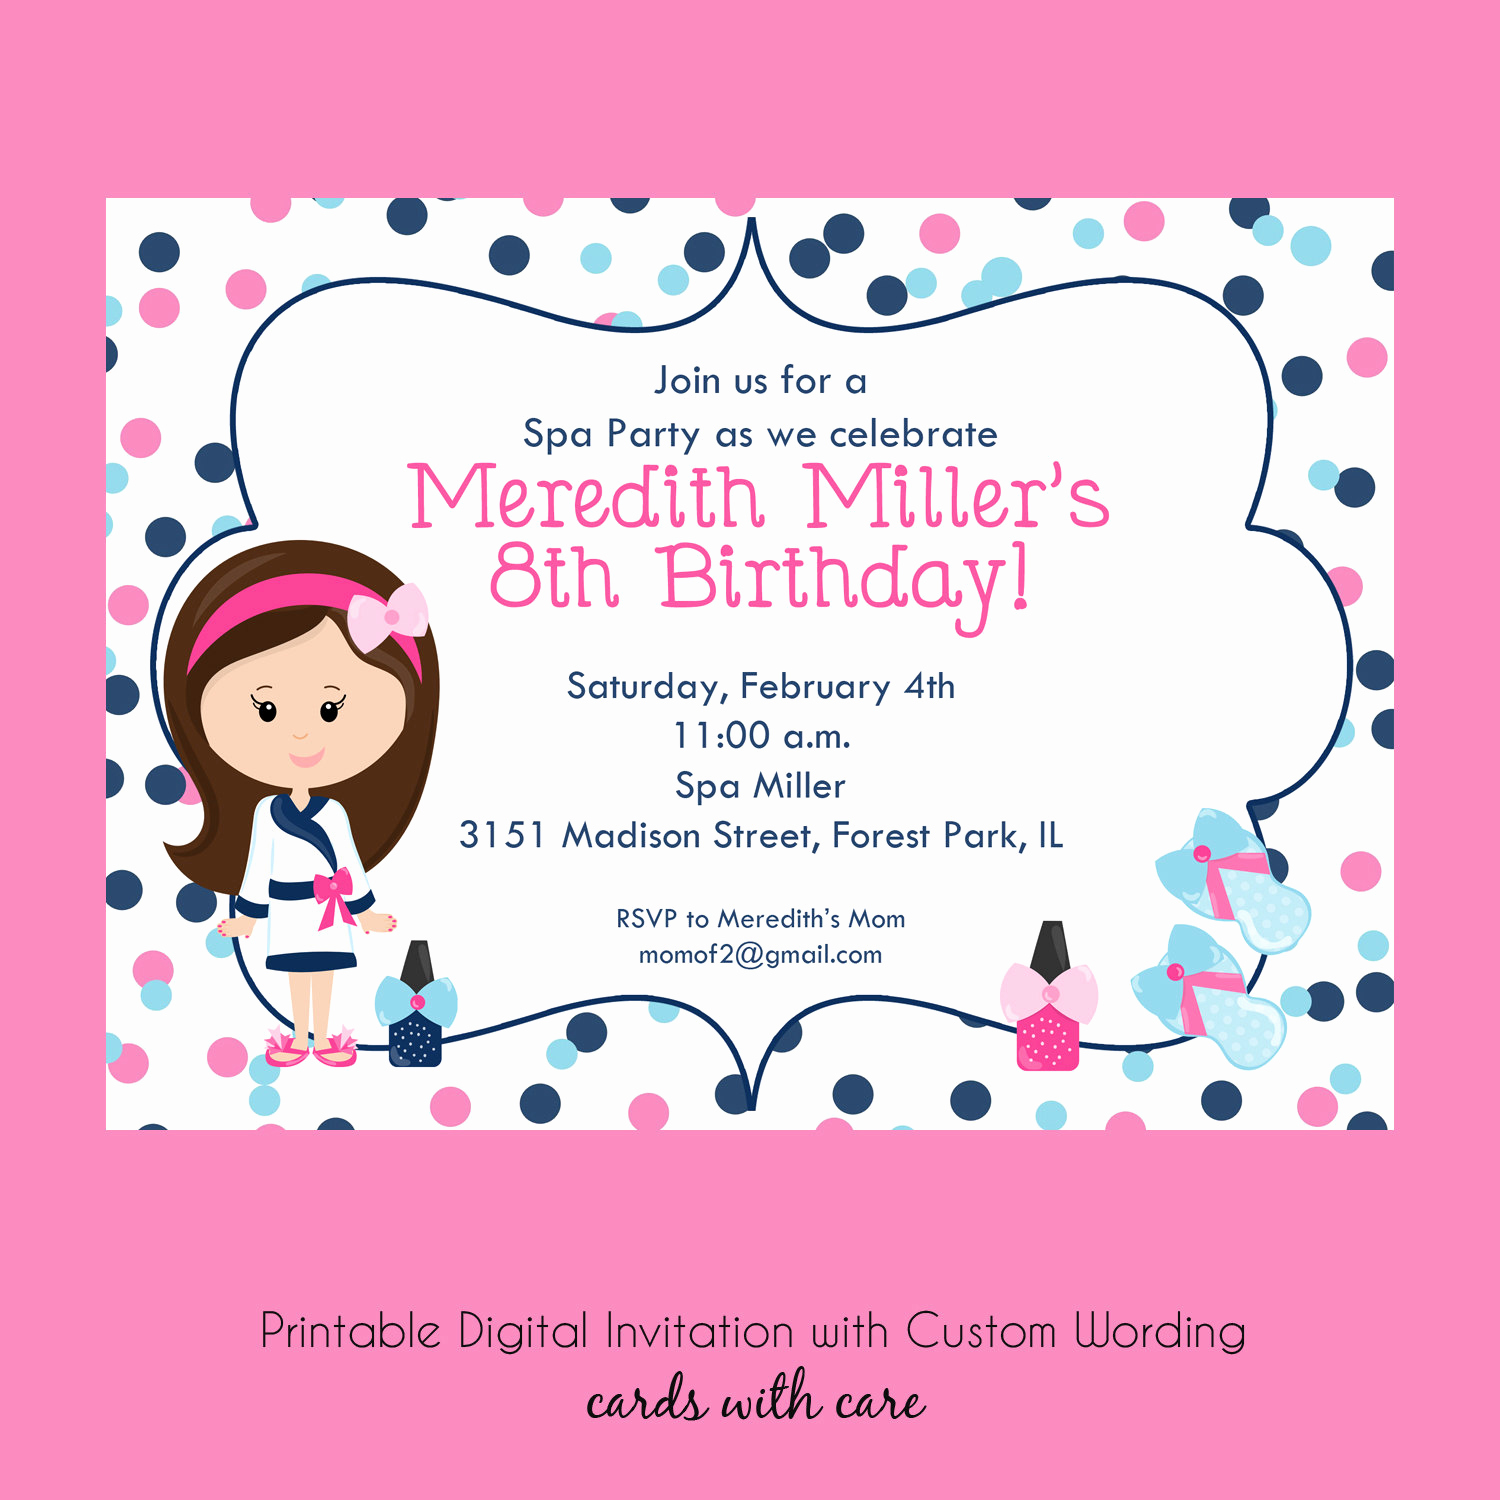 Spa Party Invitation Wording Best Of Spa Party Printable Invitation Girl Birthday by Cardsbycarolyn